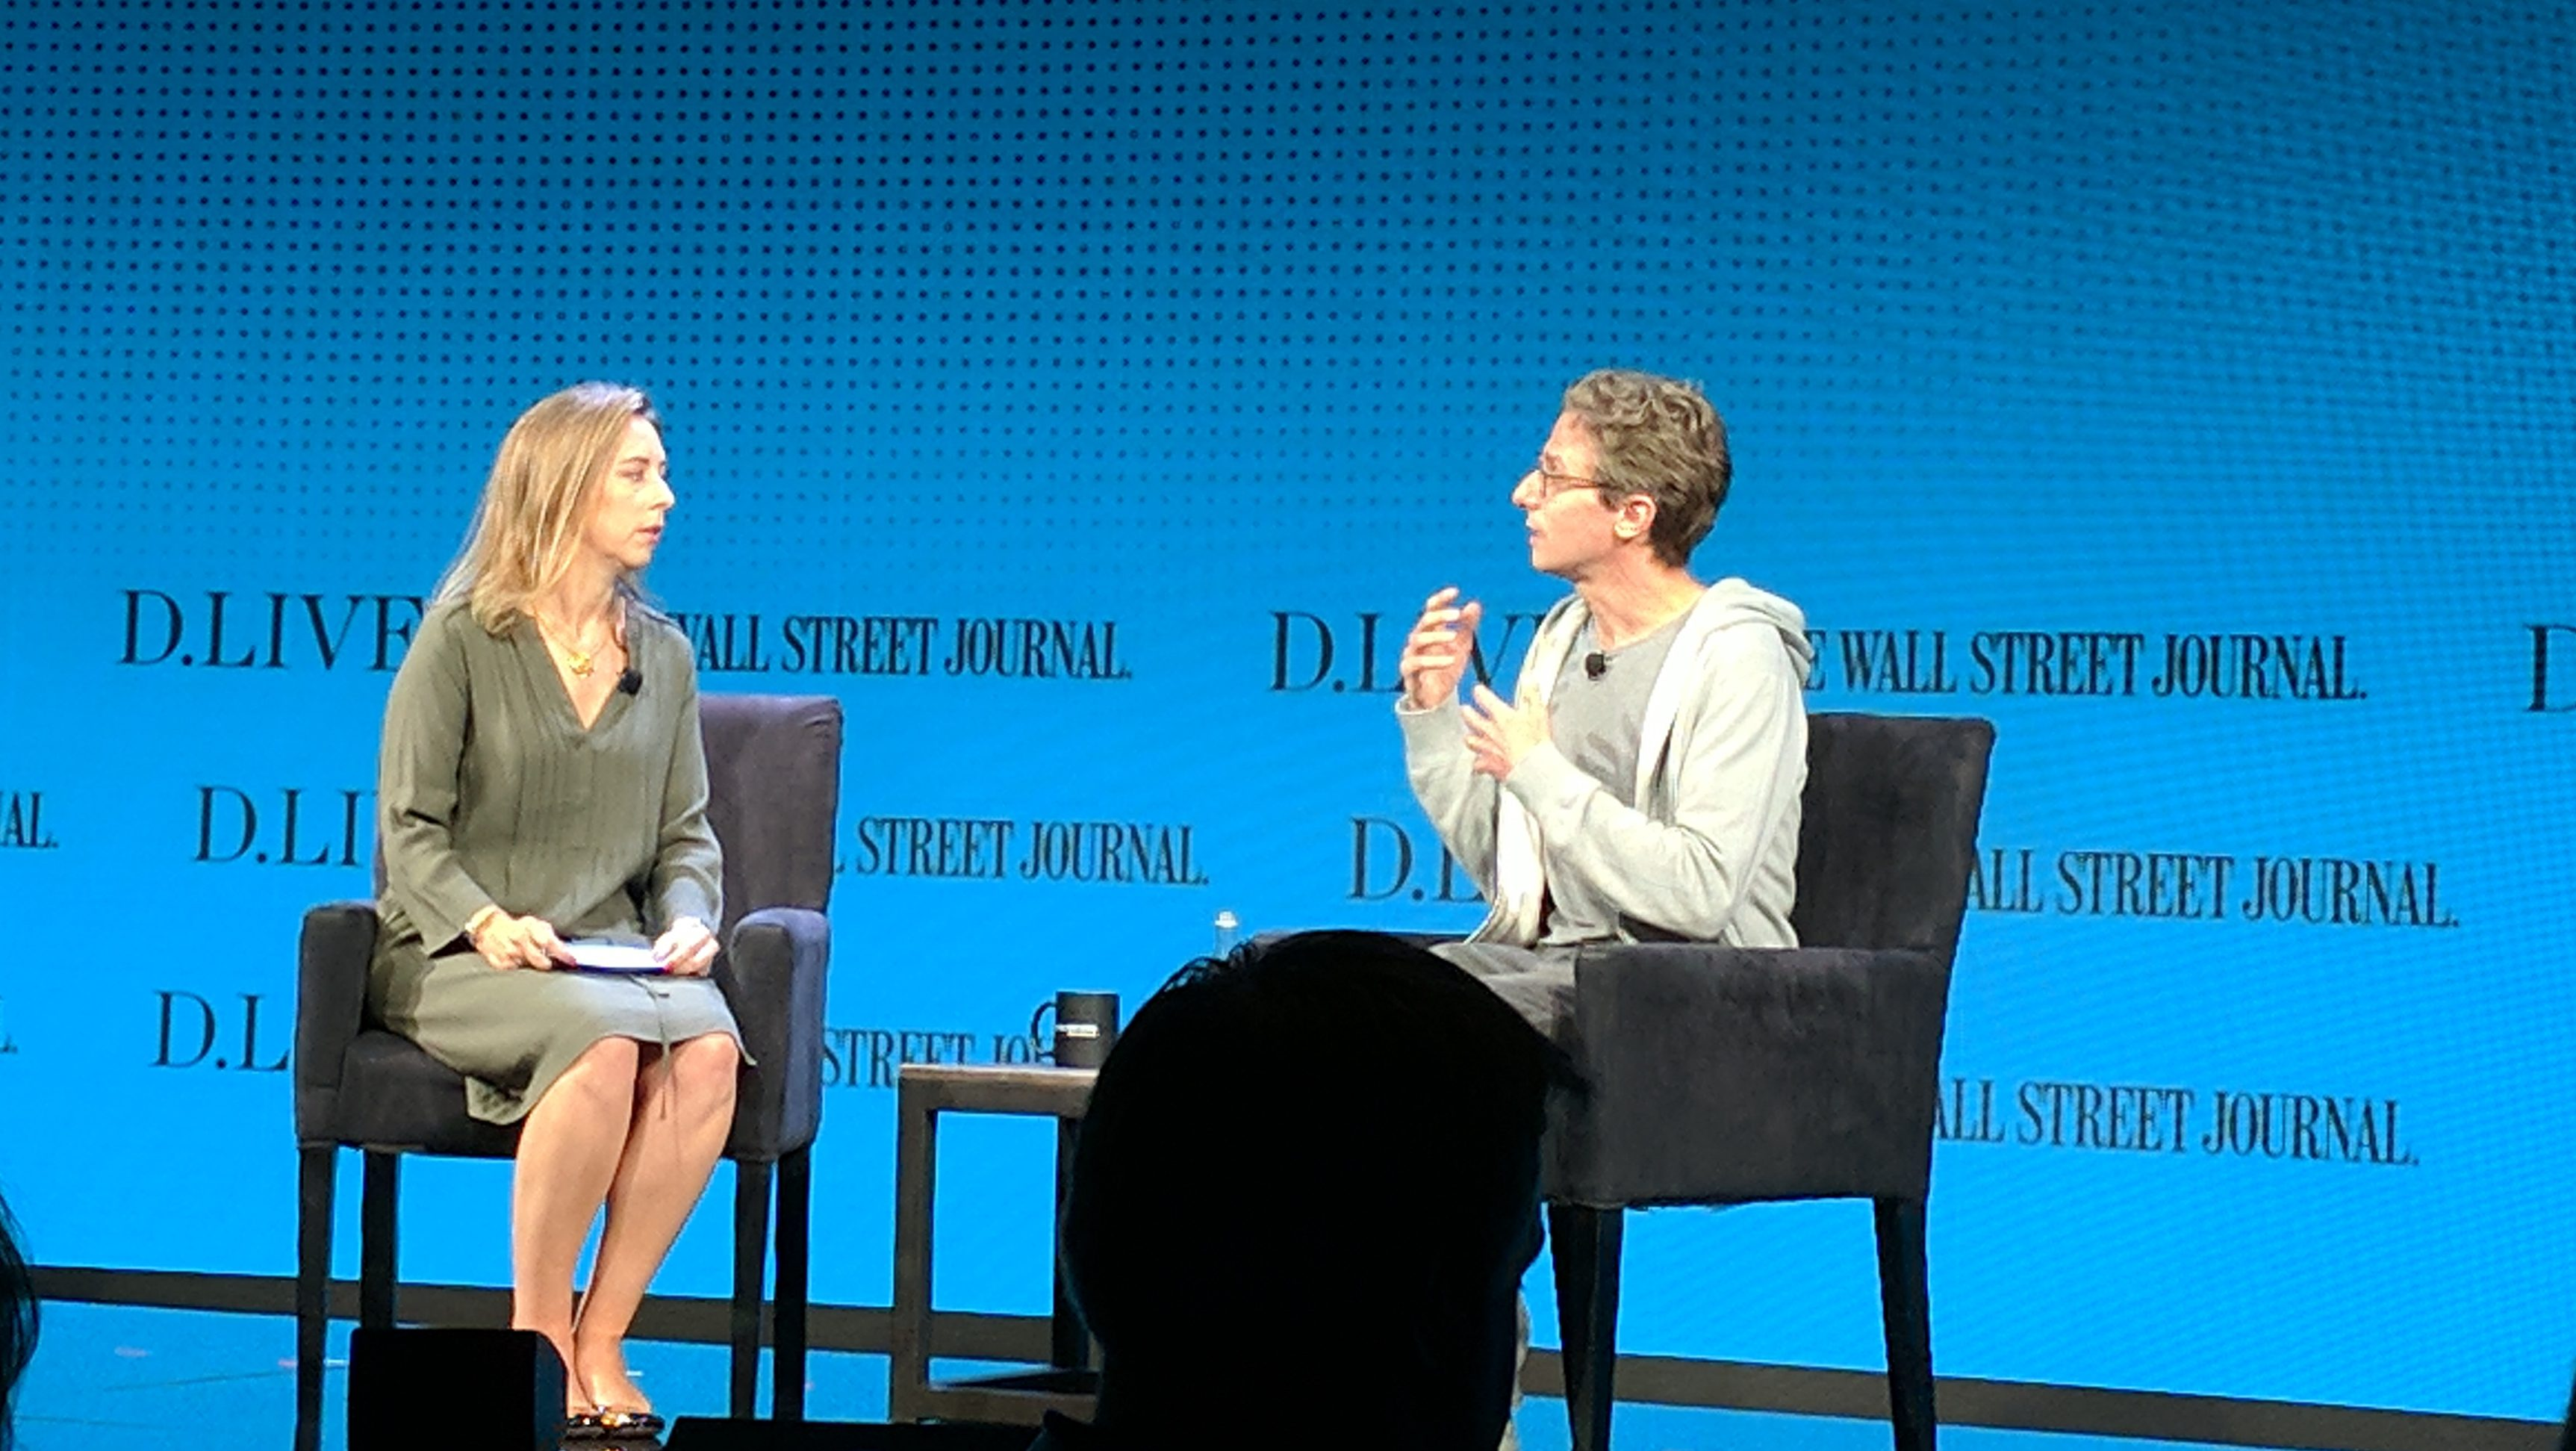 BuzzFeed CEO Jonah Peretti: Paywalls Are Bad for Democracy